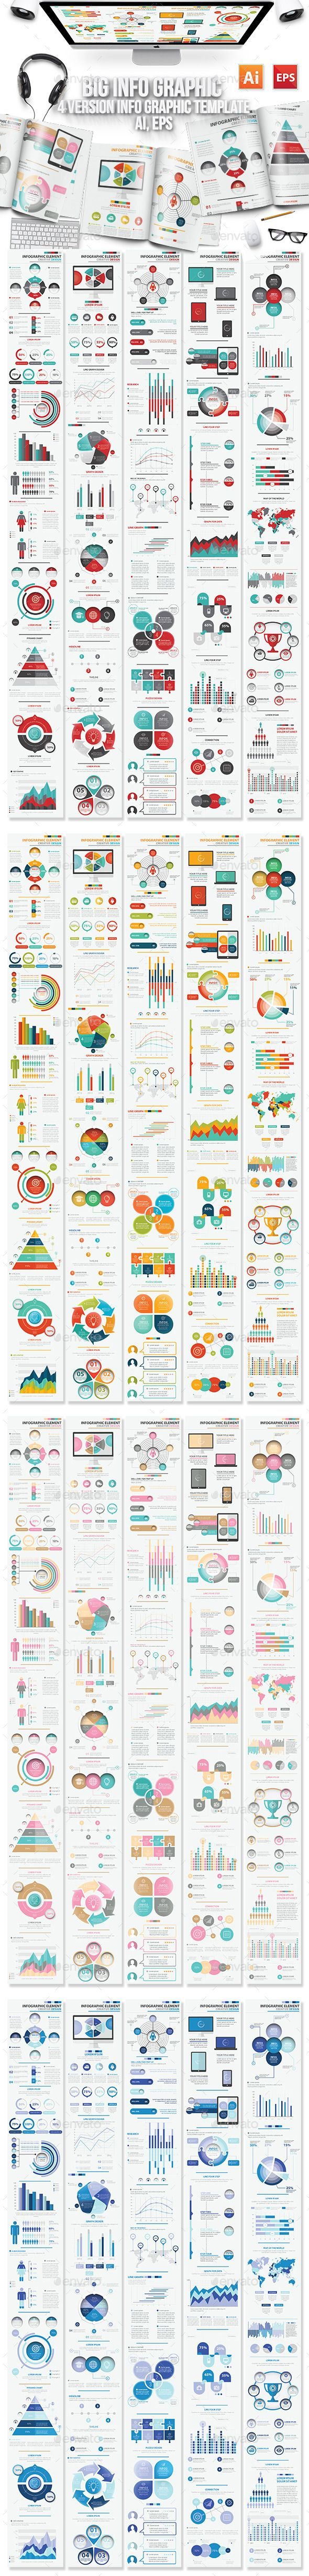 Info Graphic Elements Design — Vector EPS #piece #illustrator • Available here → https://graphicriver.net/item/info-graphic-elements-design/11938172?ref=pxcr Más